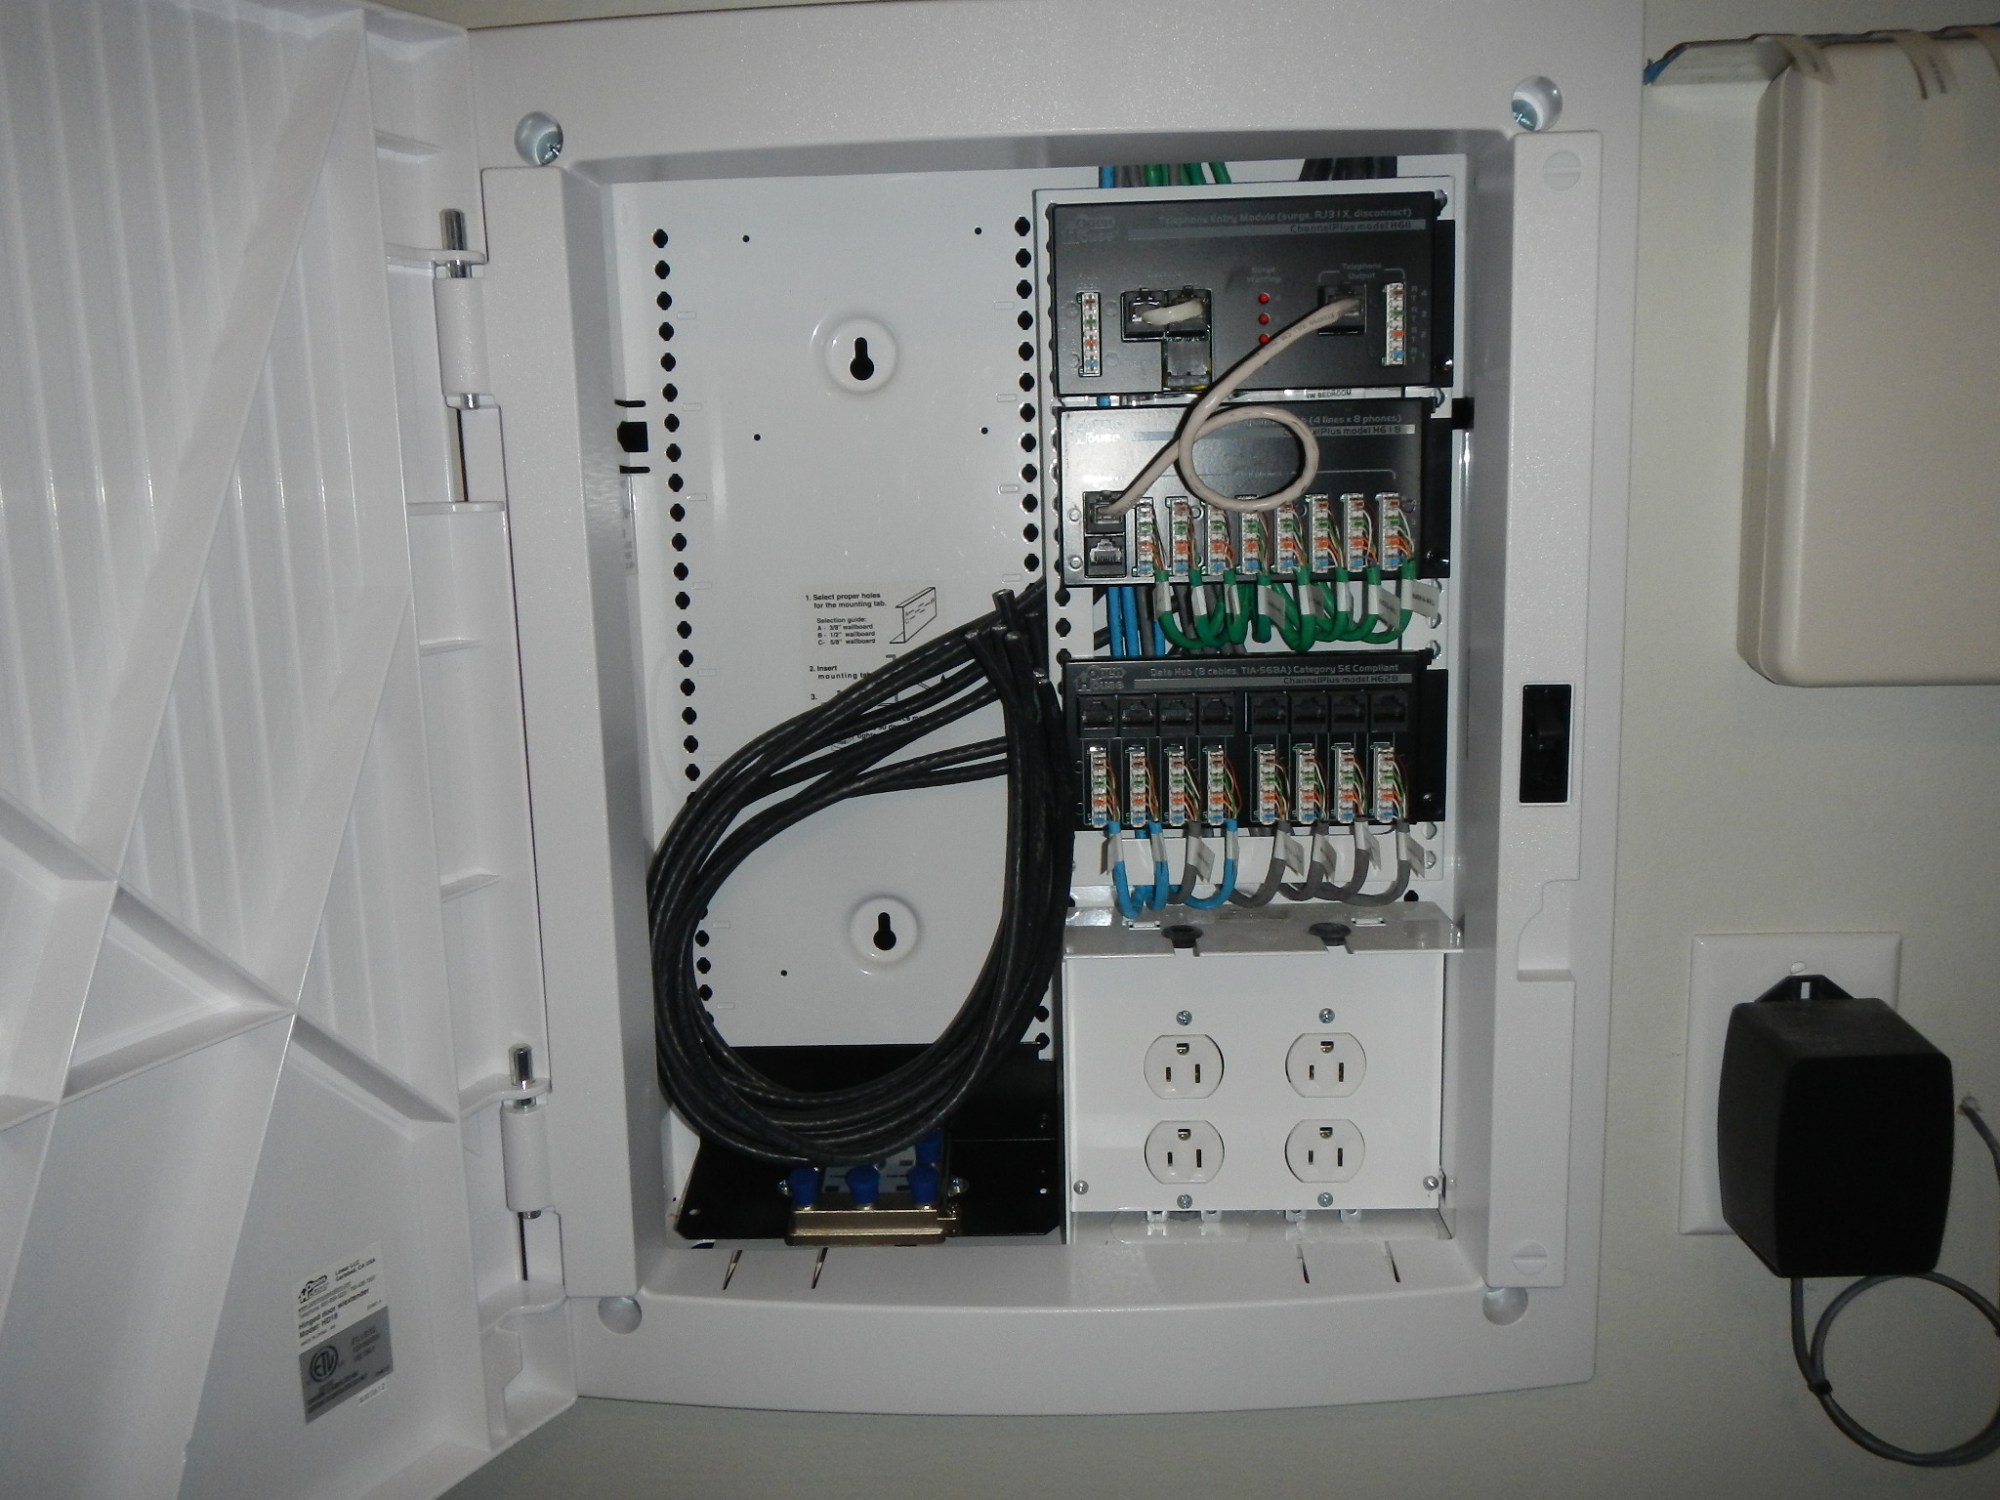 hight resolution of  3 1 2 deep structured wiring panel embedded in wall router to be